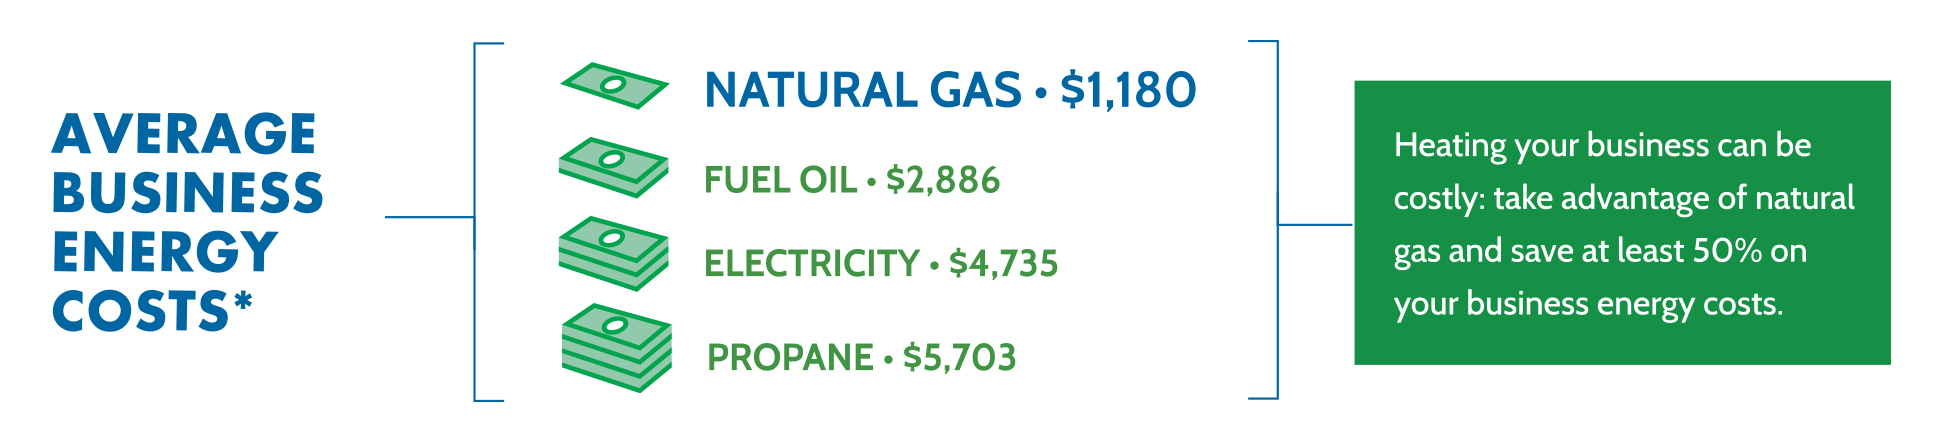 Details convert to natural gas in new jersey natgas4biz natural gas may not be directly in front of your property conversion may require additional geenschuldenfo Image collections